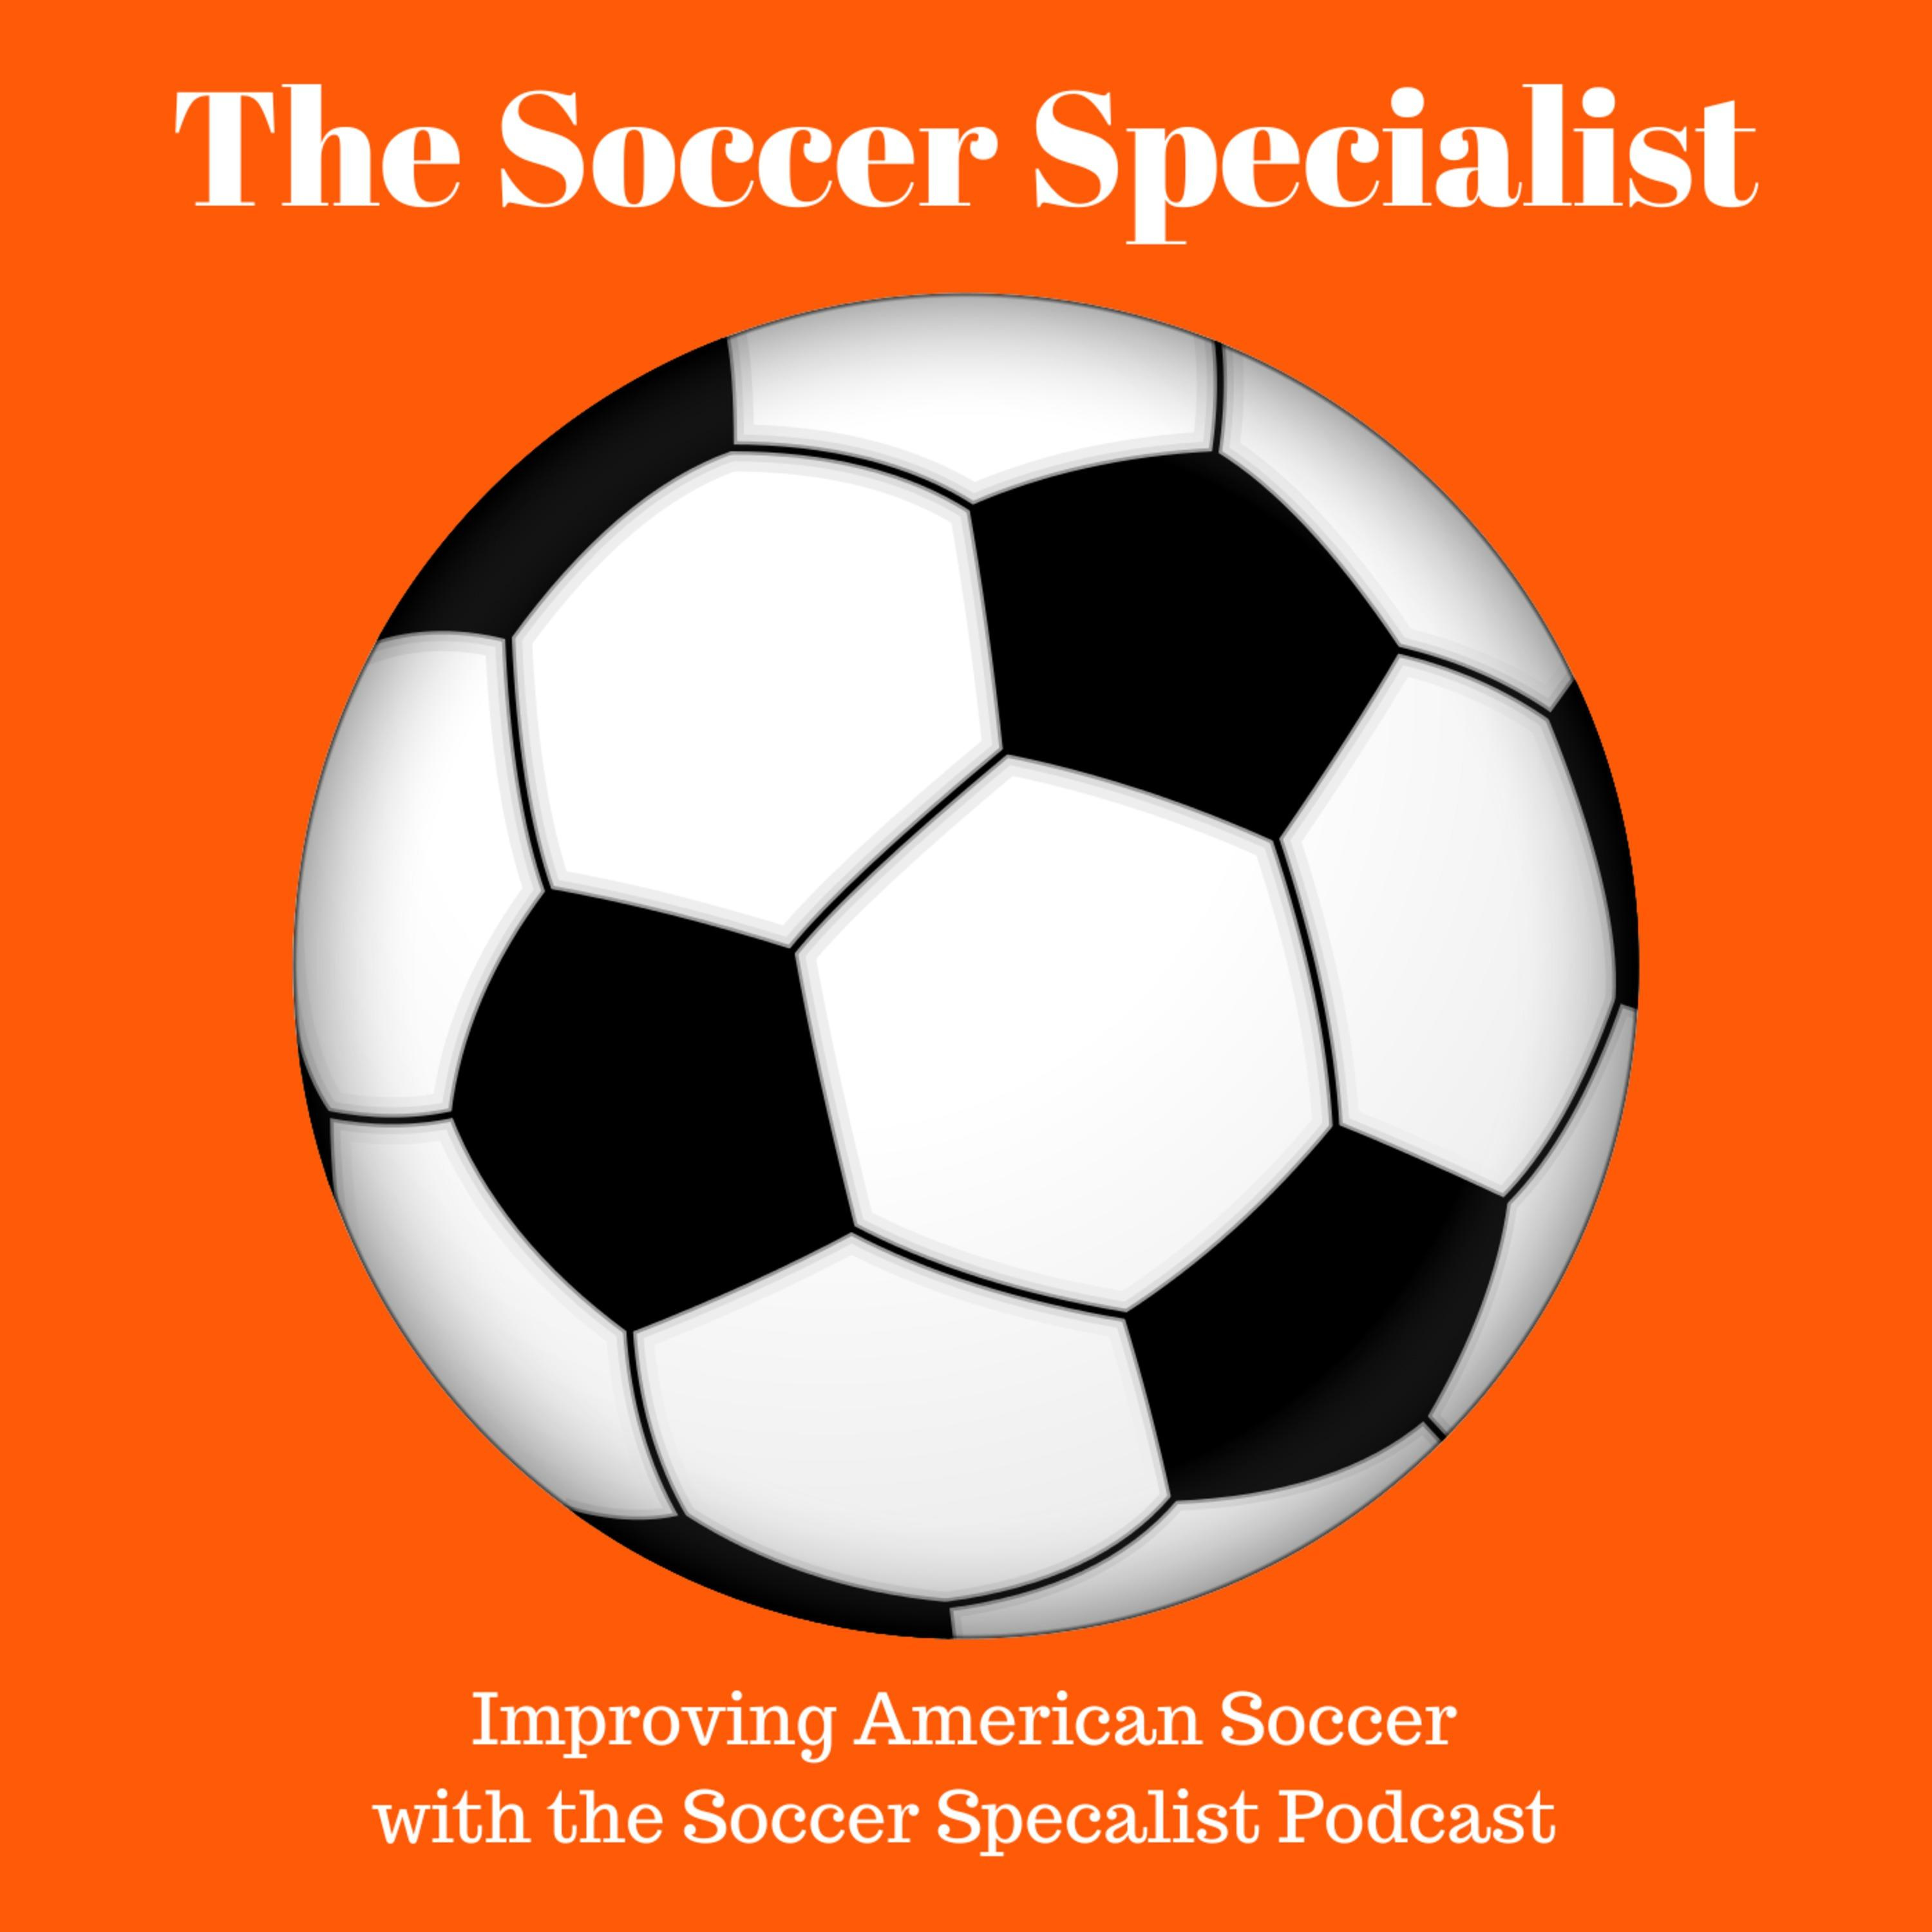 Discover How This Rule of Music Can Help You Become A More Creative Soccer Player